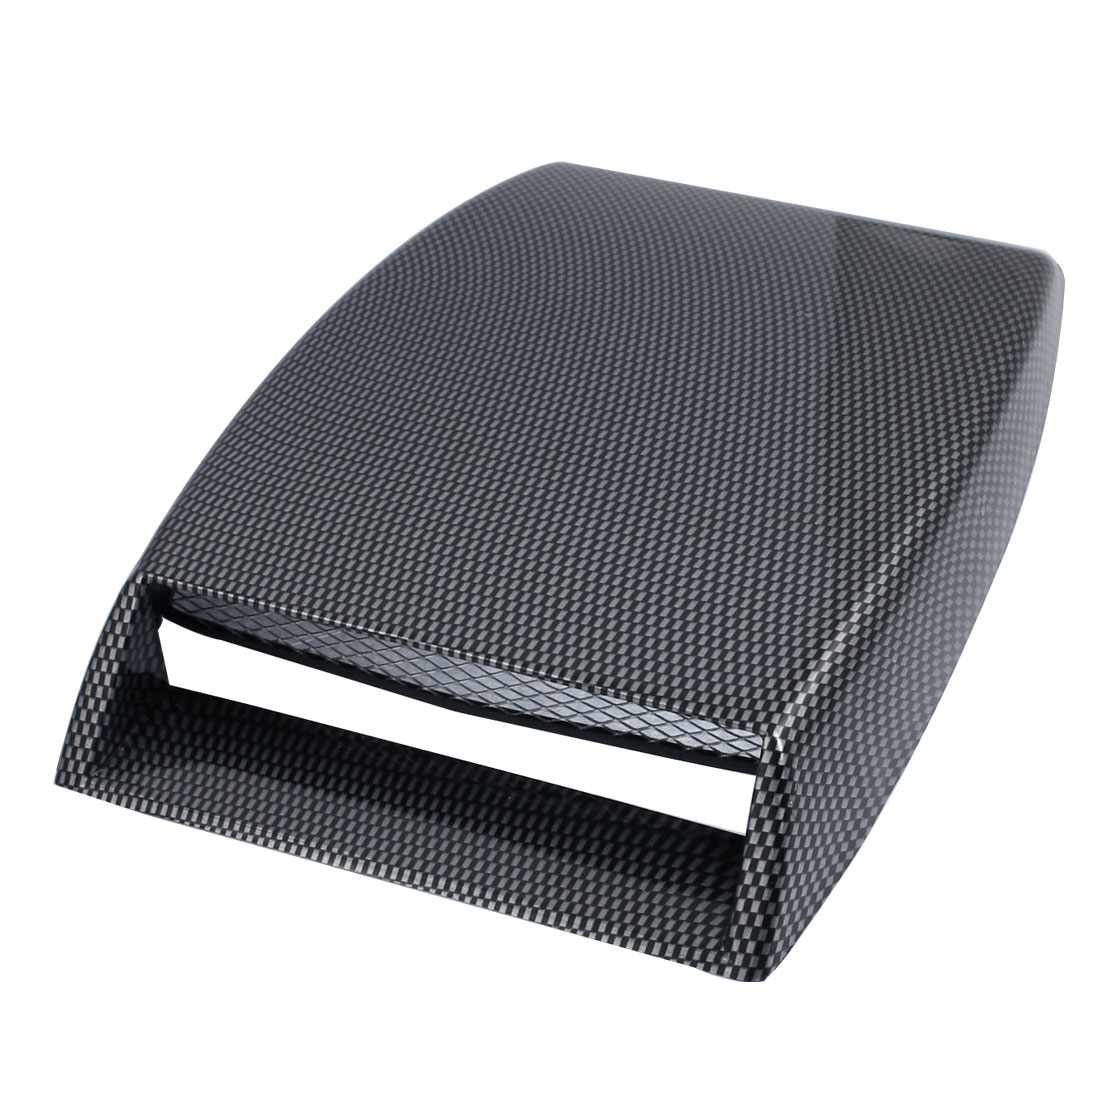 Auto Car Air Flow Vent Gray Black Plaided Plastic Hood Scoop Decoration